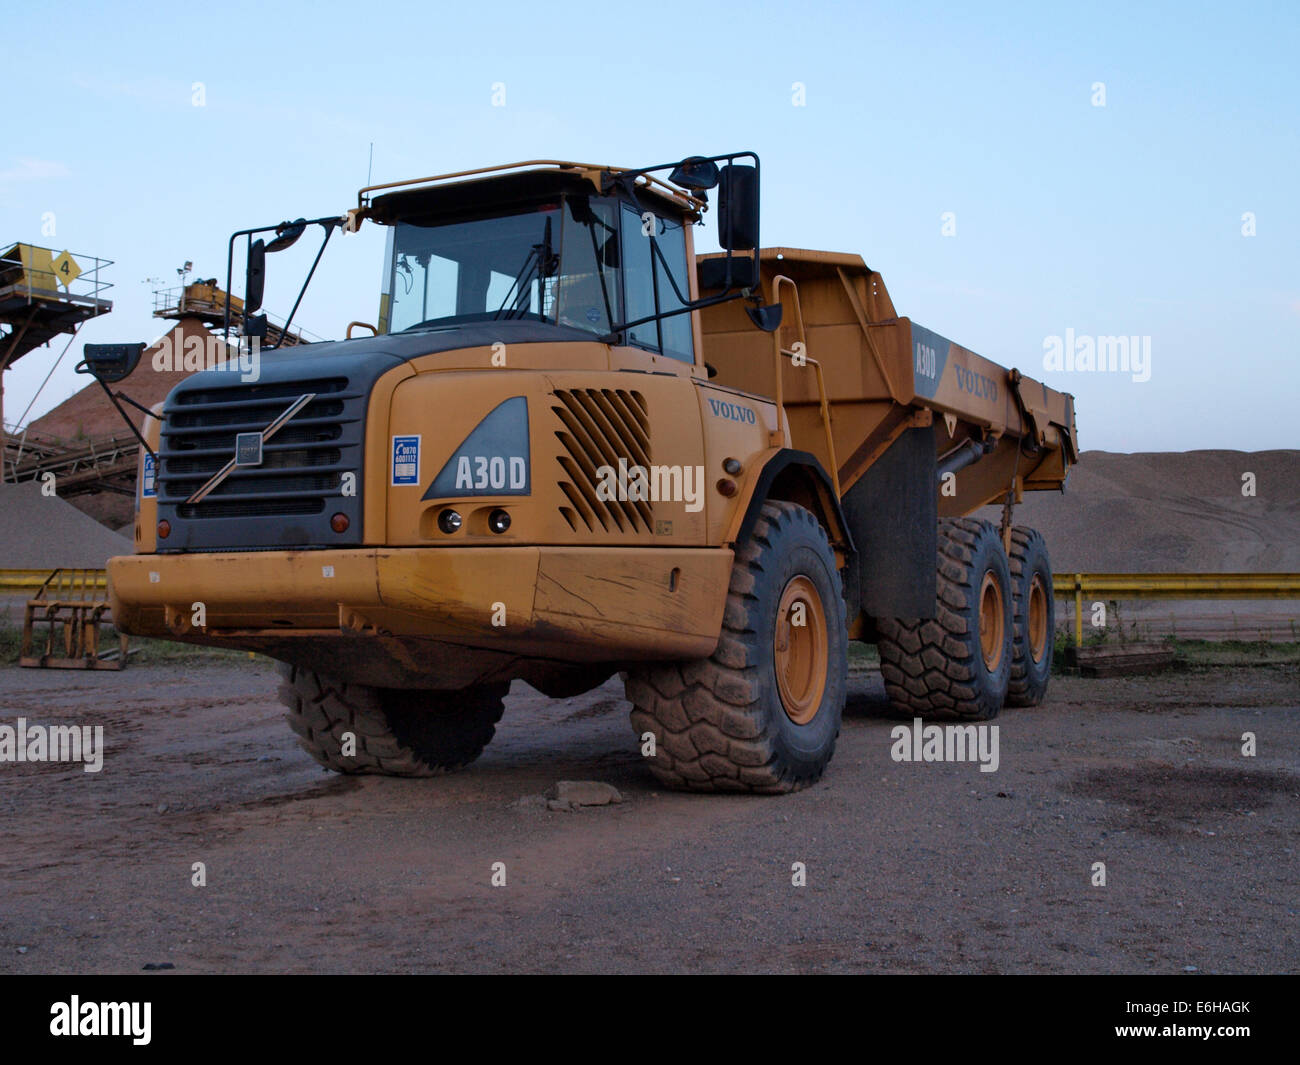 Hauler Stock Photos Images Alamy Volvo A30d Wiring Diagram Articulated Dump Truck Uk Image